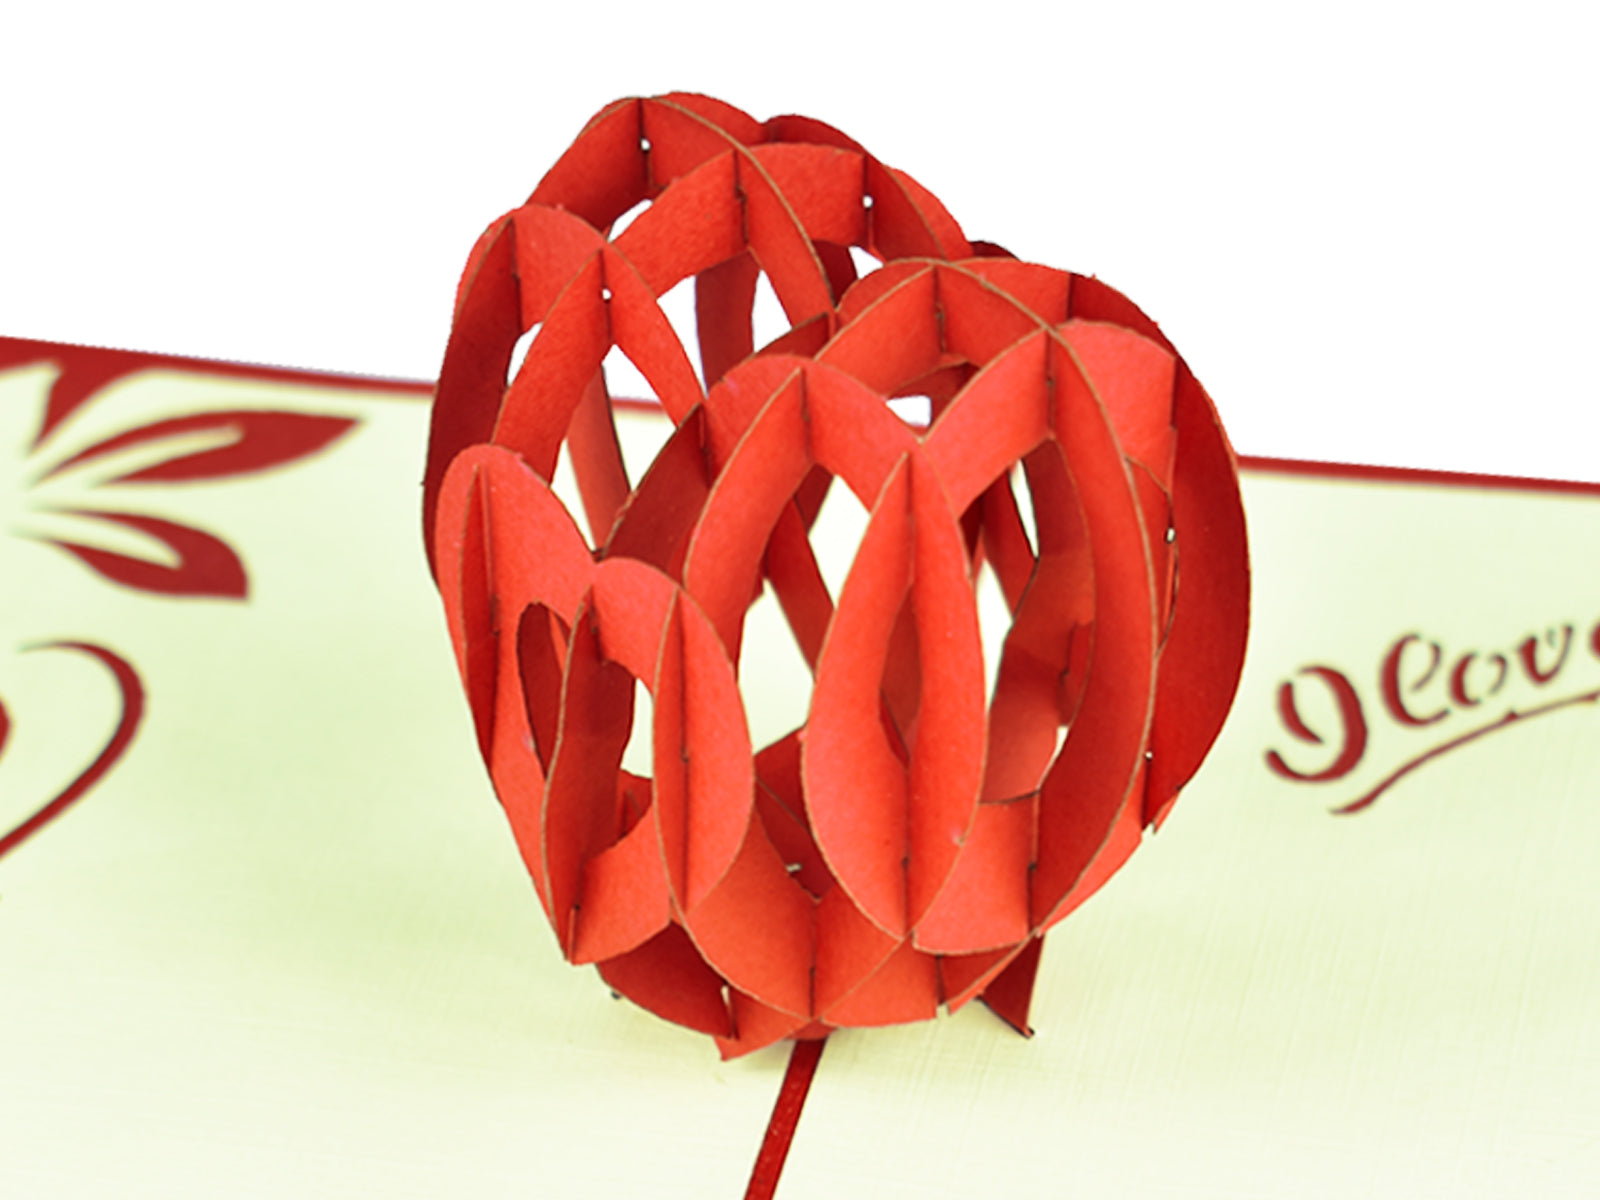 3D Love Heart Pop Up Card - close up